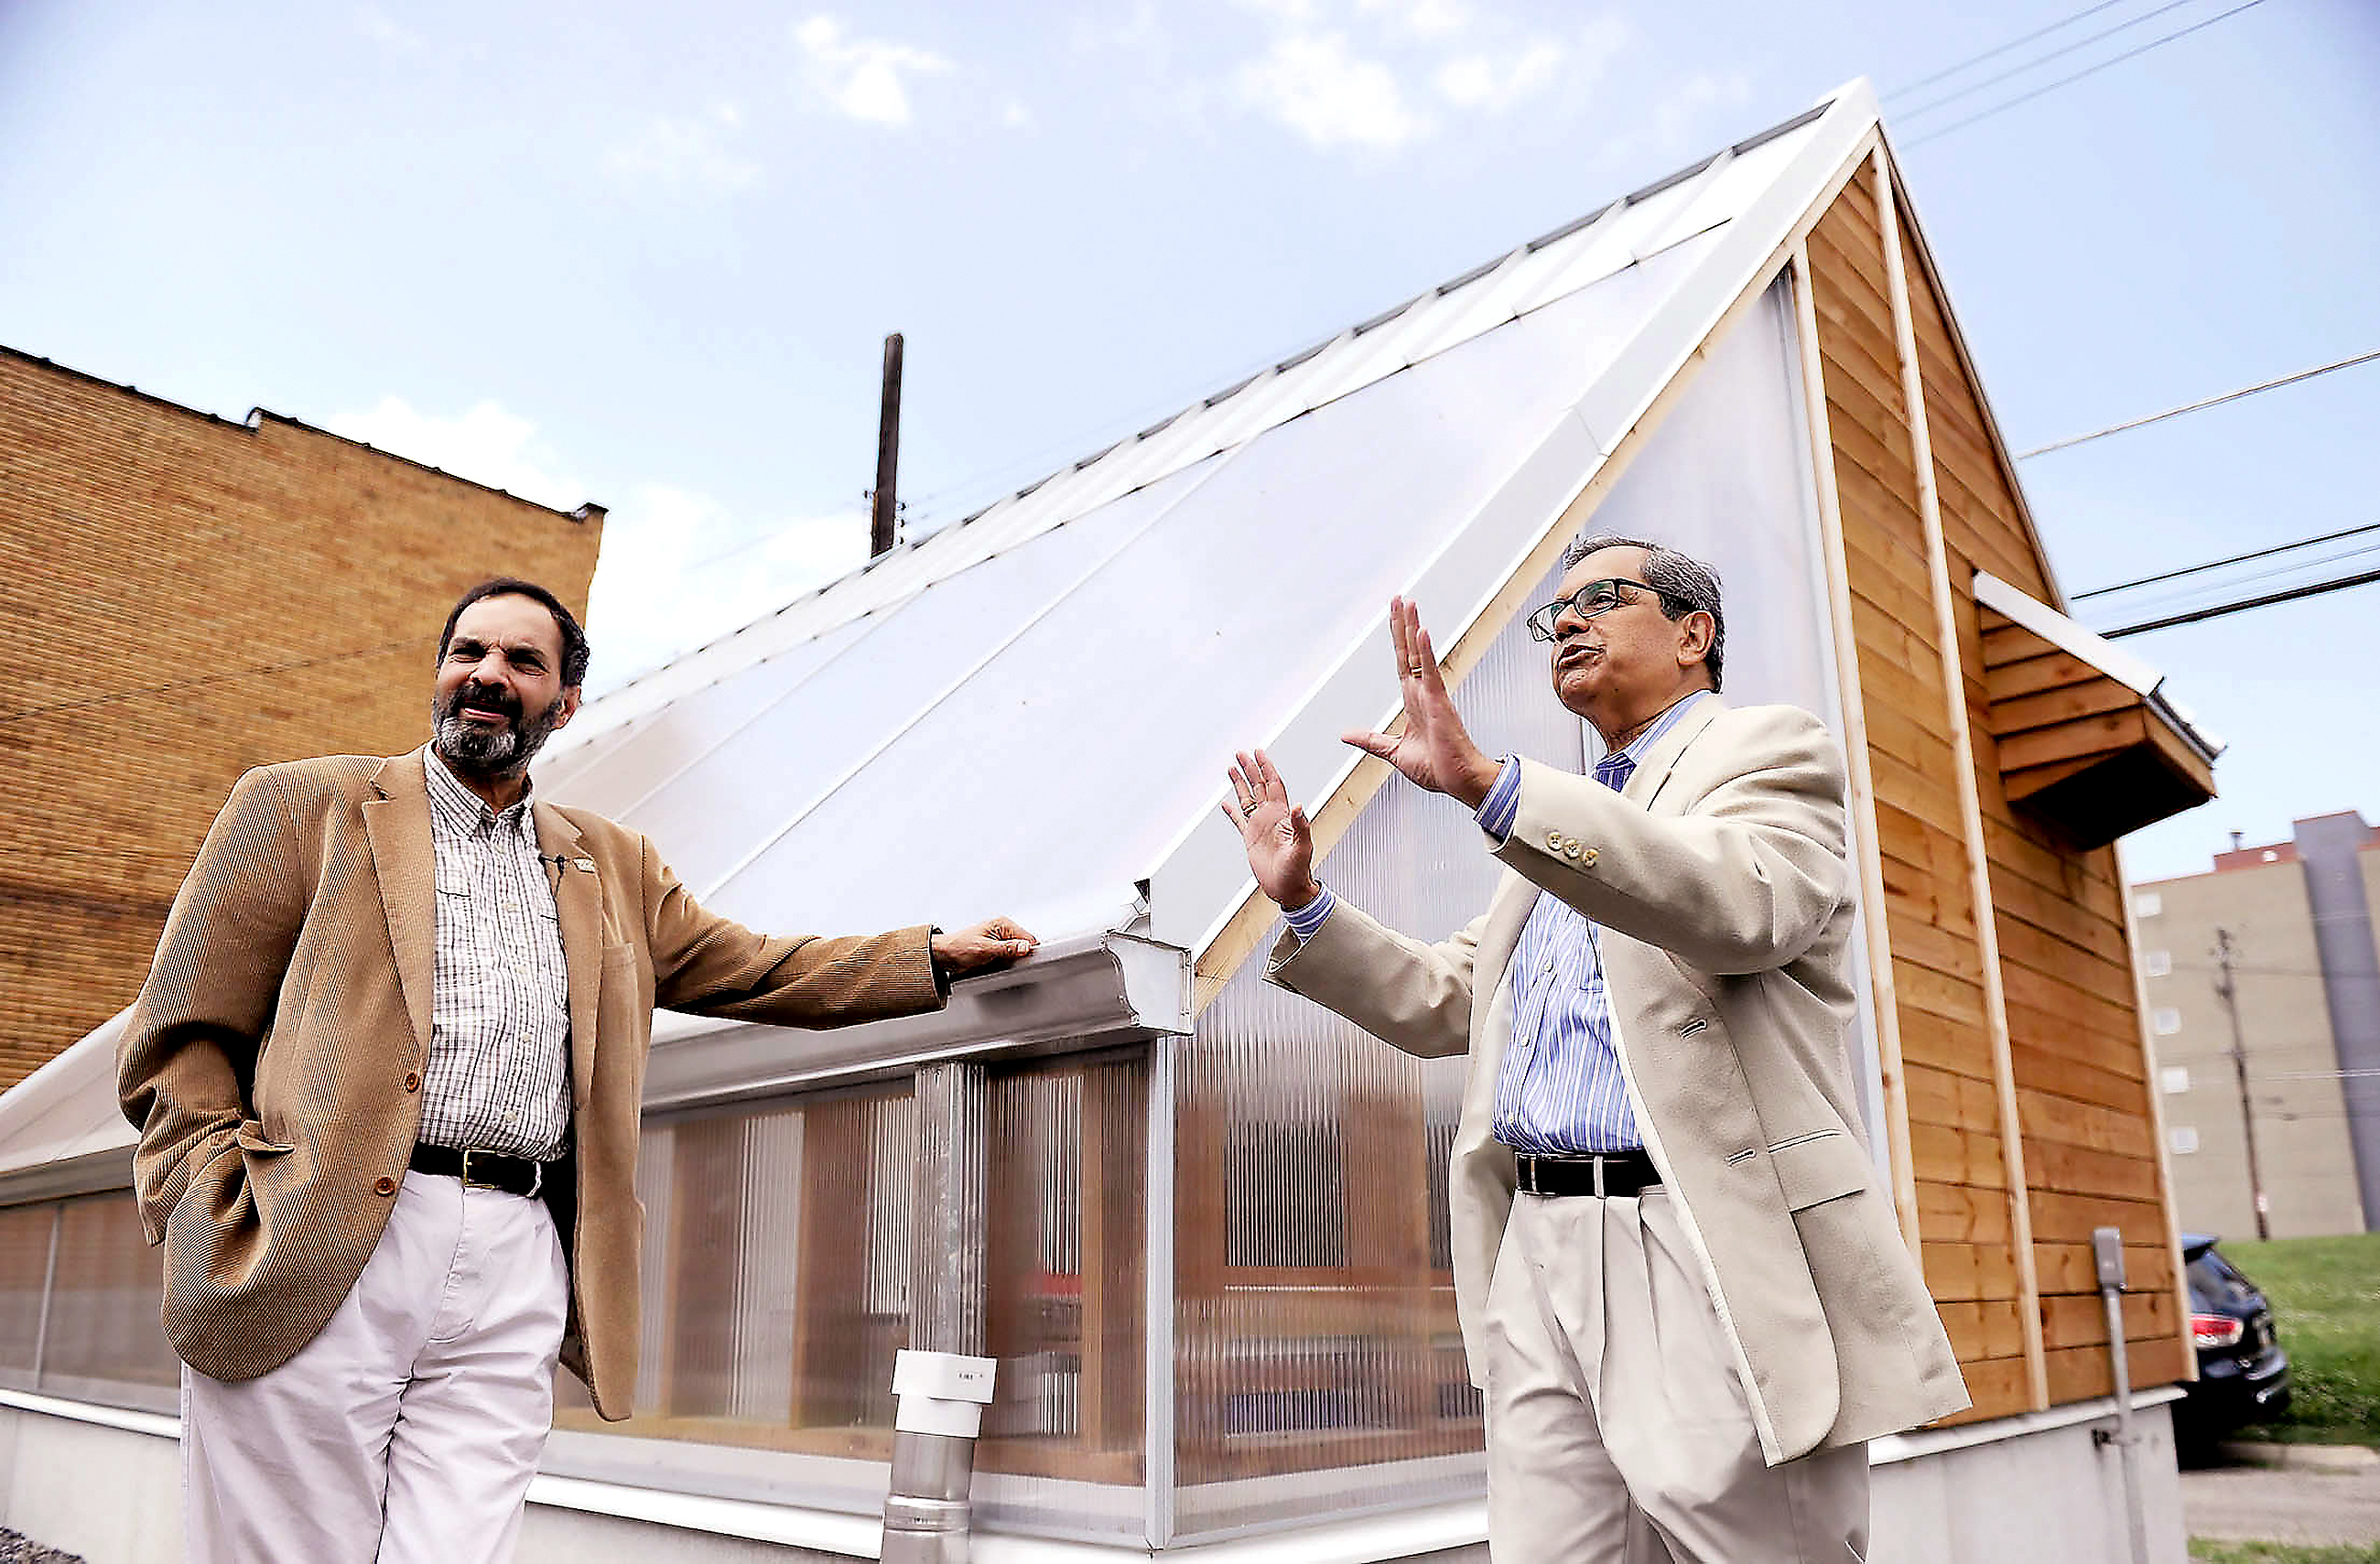 BULLDOG - 20160708MWHIndiaAdvance01 University of Pittsburgh professors Bopaya Bidanda, left, and John Camillus, right, in July 2016. They described their vision for a solar-powered microgrid in Homewood while showing off the first piece: a bioshelter powered by a canopy of solar panels next to the Bible Center Church, Inc. on Fleury Way.